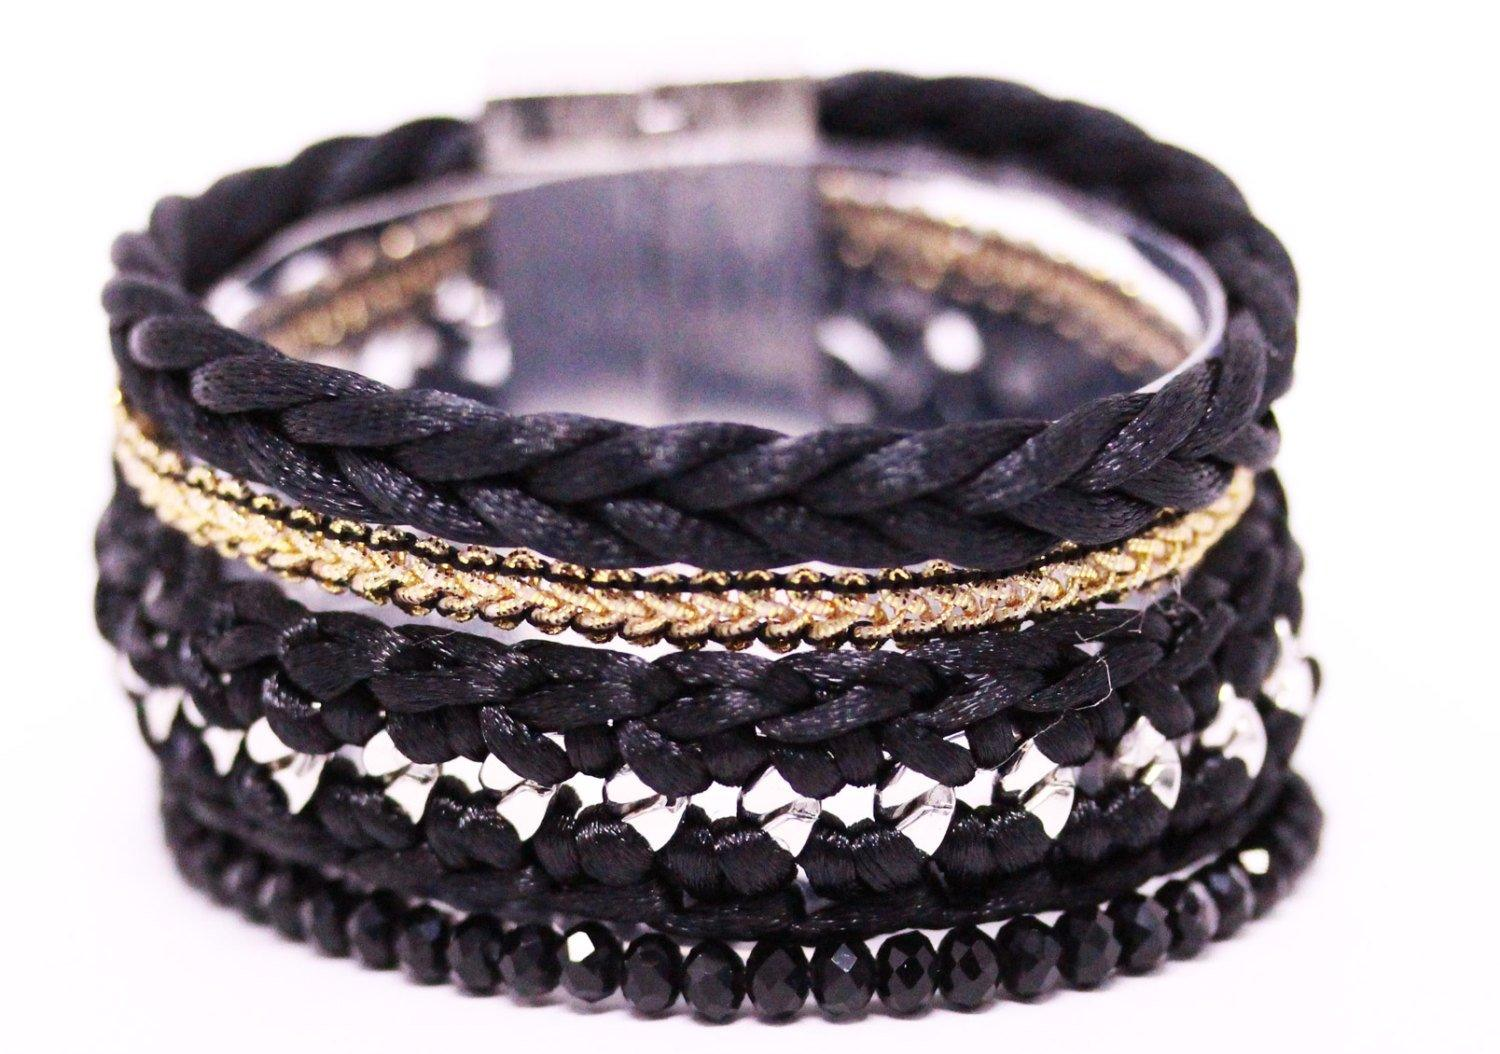 Black Boho Brazilian Bracelet - Multi Layer Bracelet - Woman Boho Bracelet - Black Bracelet - product_type] - Beautiz